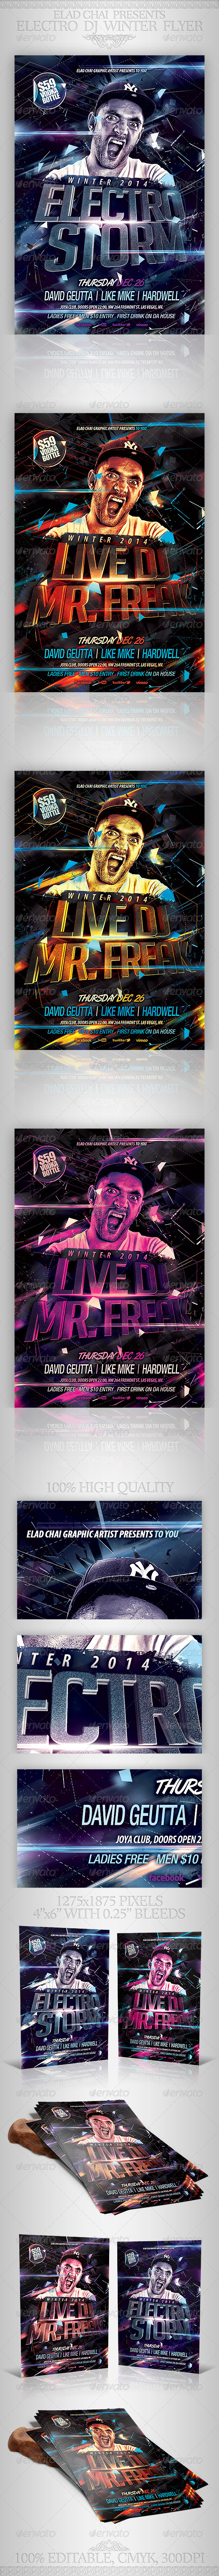 GraphicRiver Electro Dj Party Flyer Template 6502526